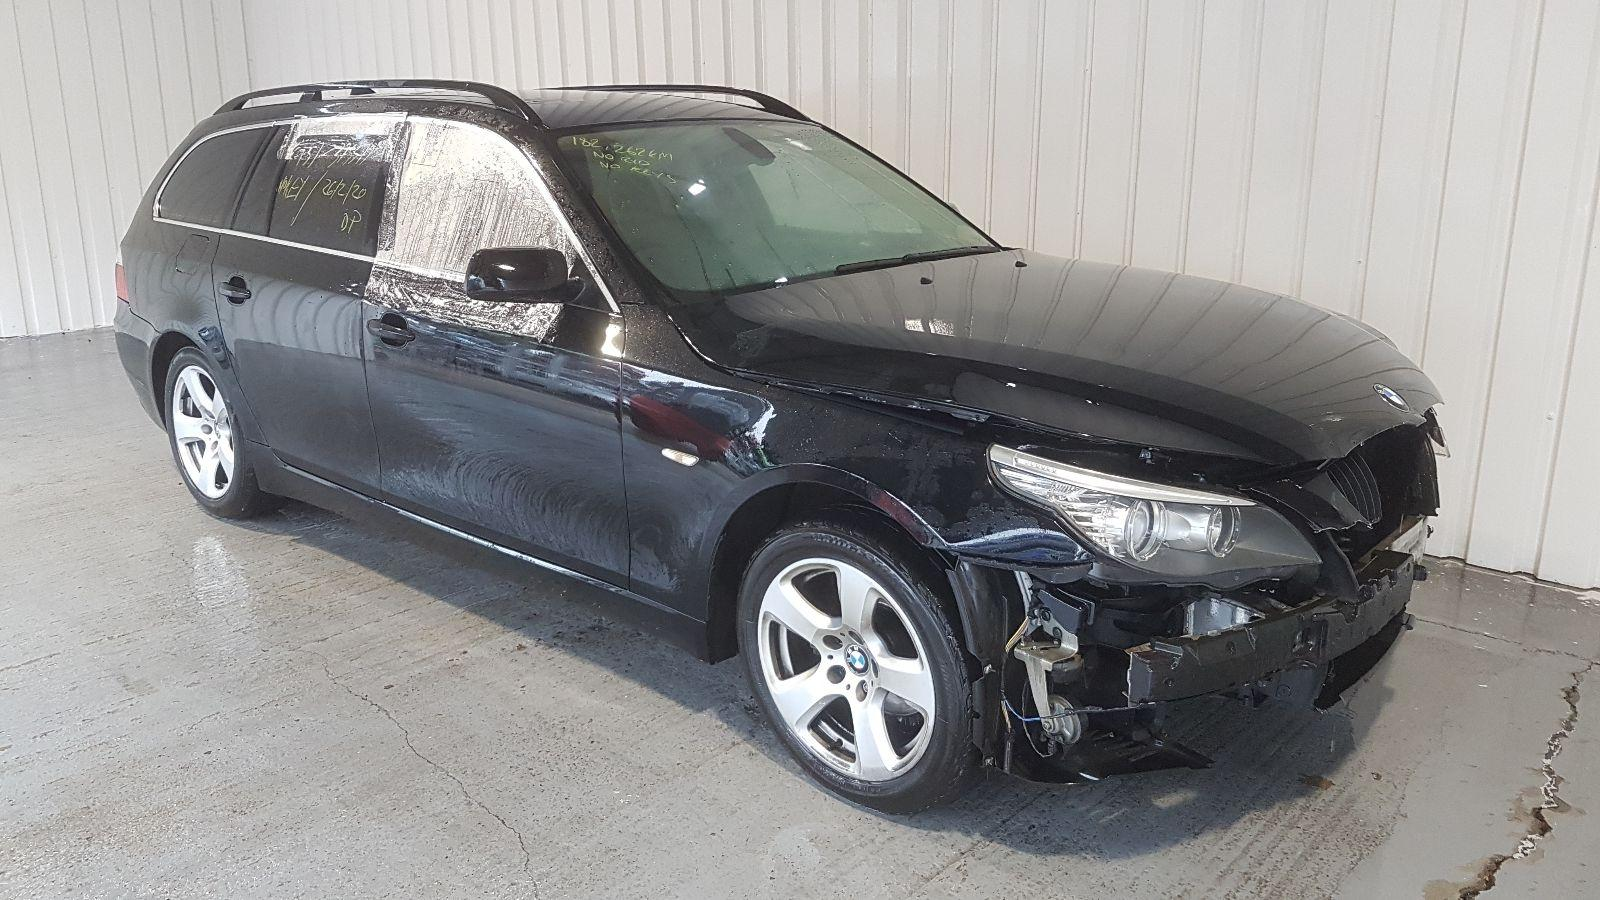 Image for a Bmw 5 Series 2007 5 Door Estate